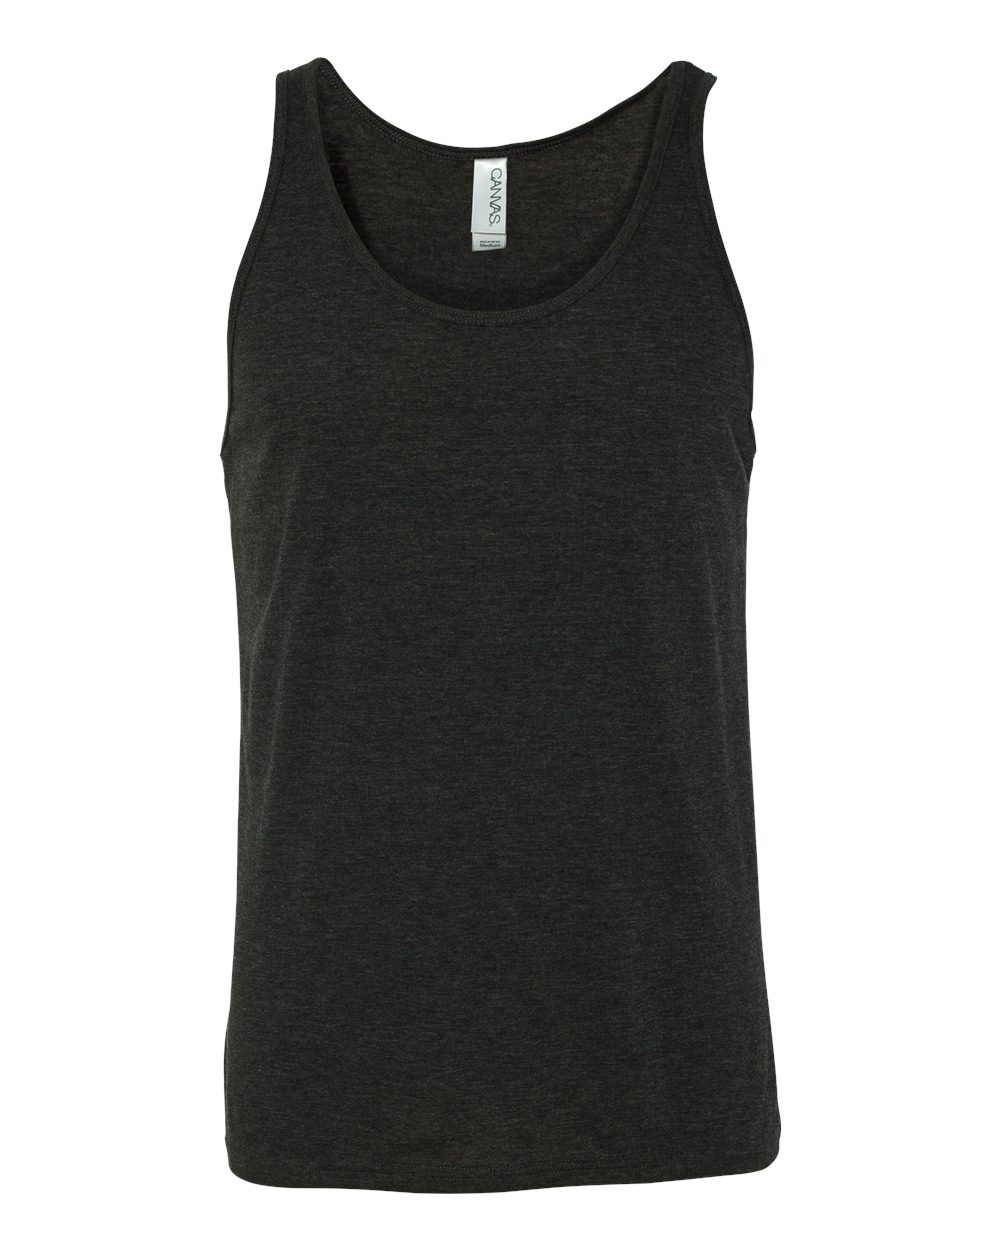 Bella_+_Canvas_3480_Charcoal-Black_Triblend_Front_High.jpg